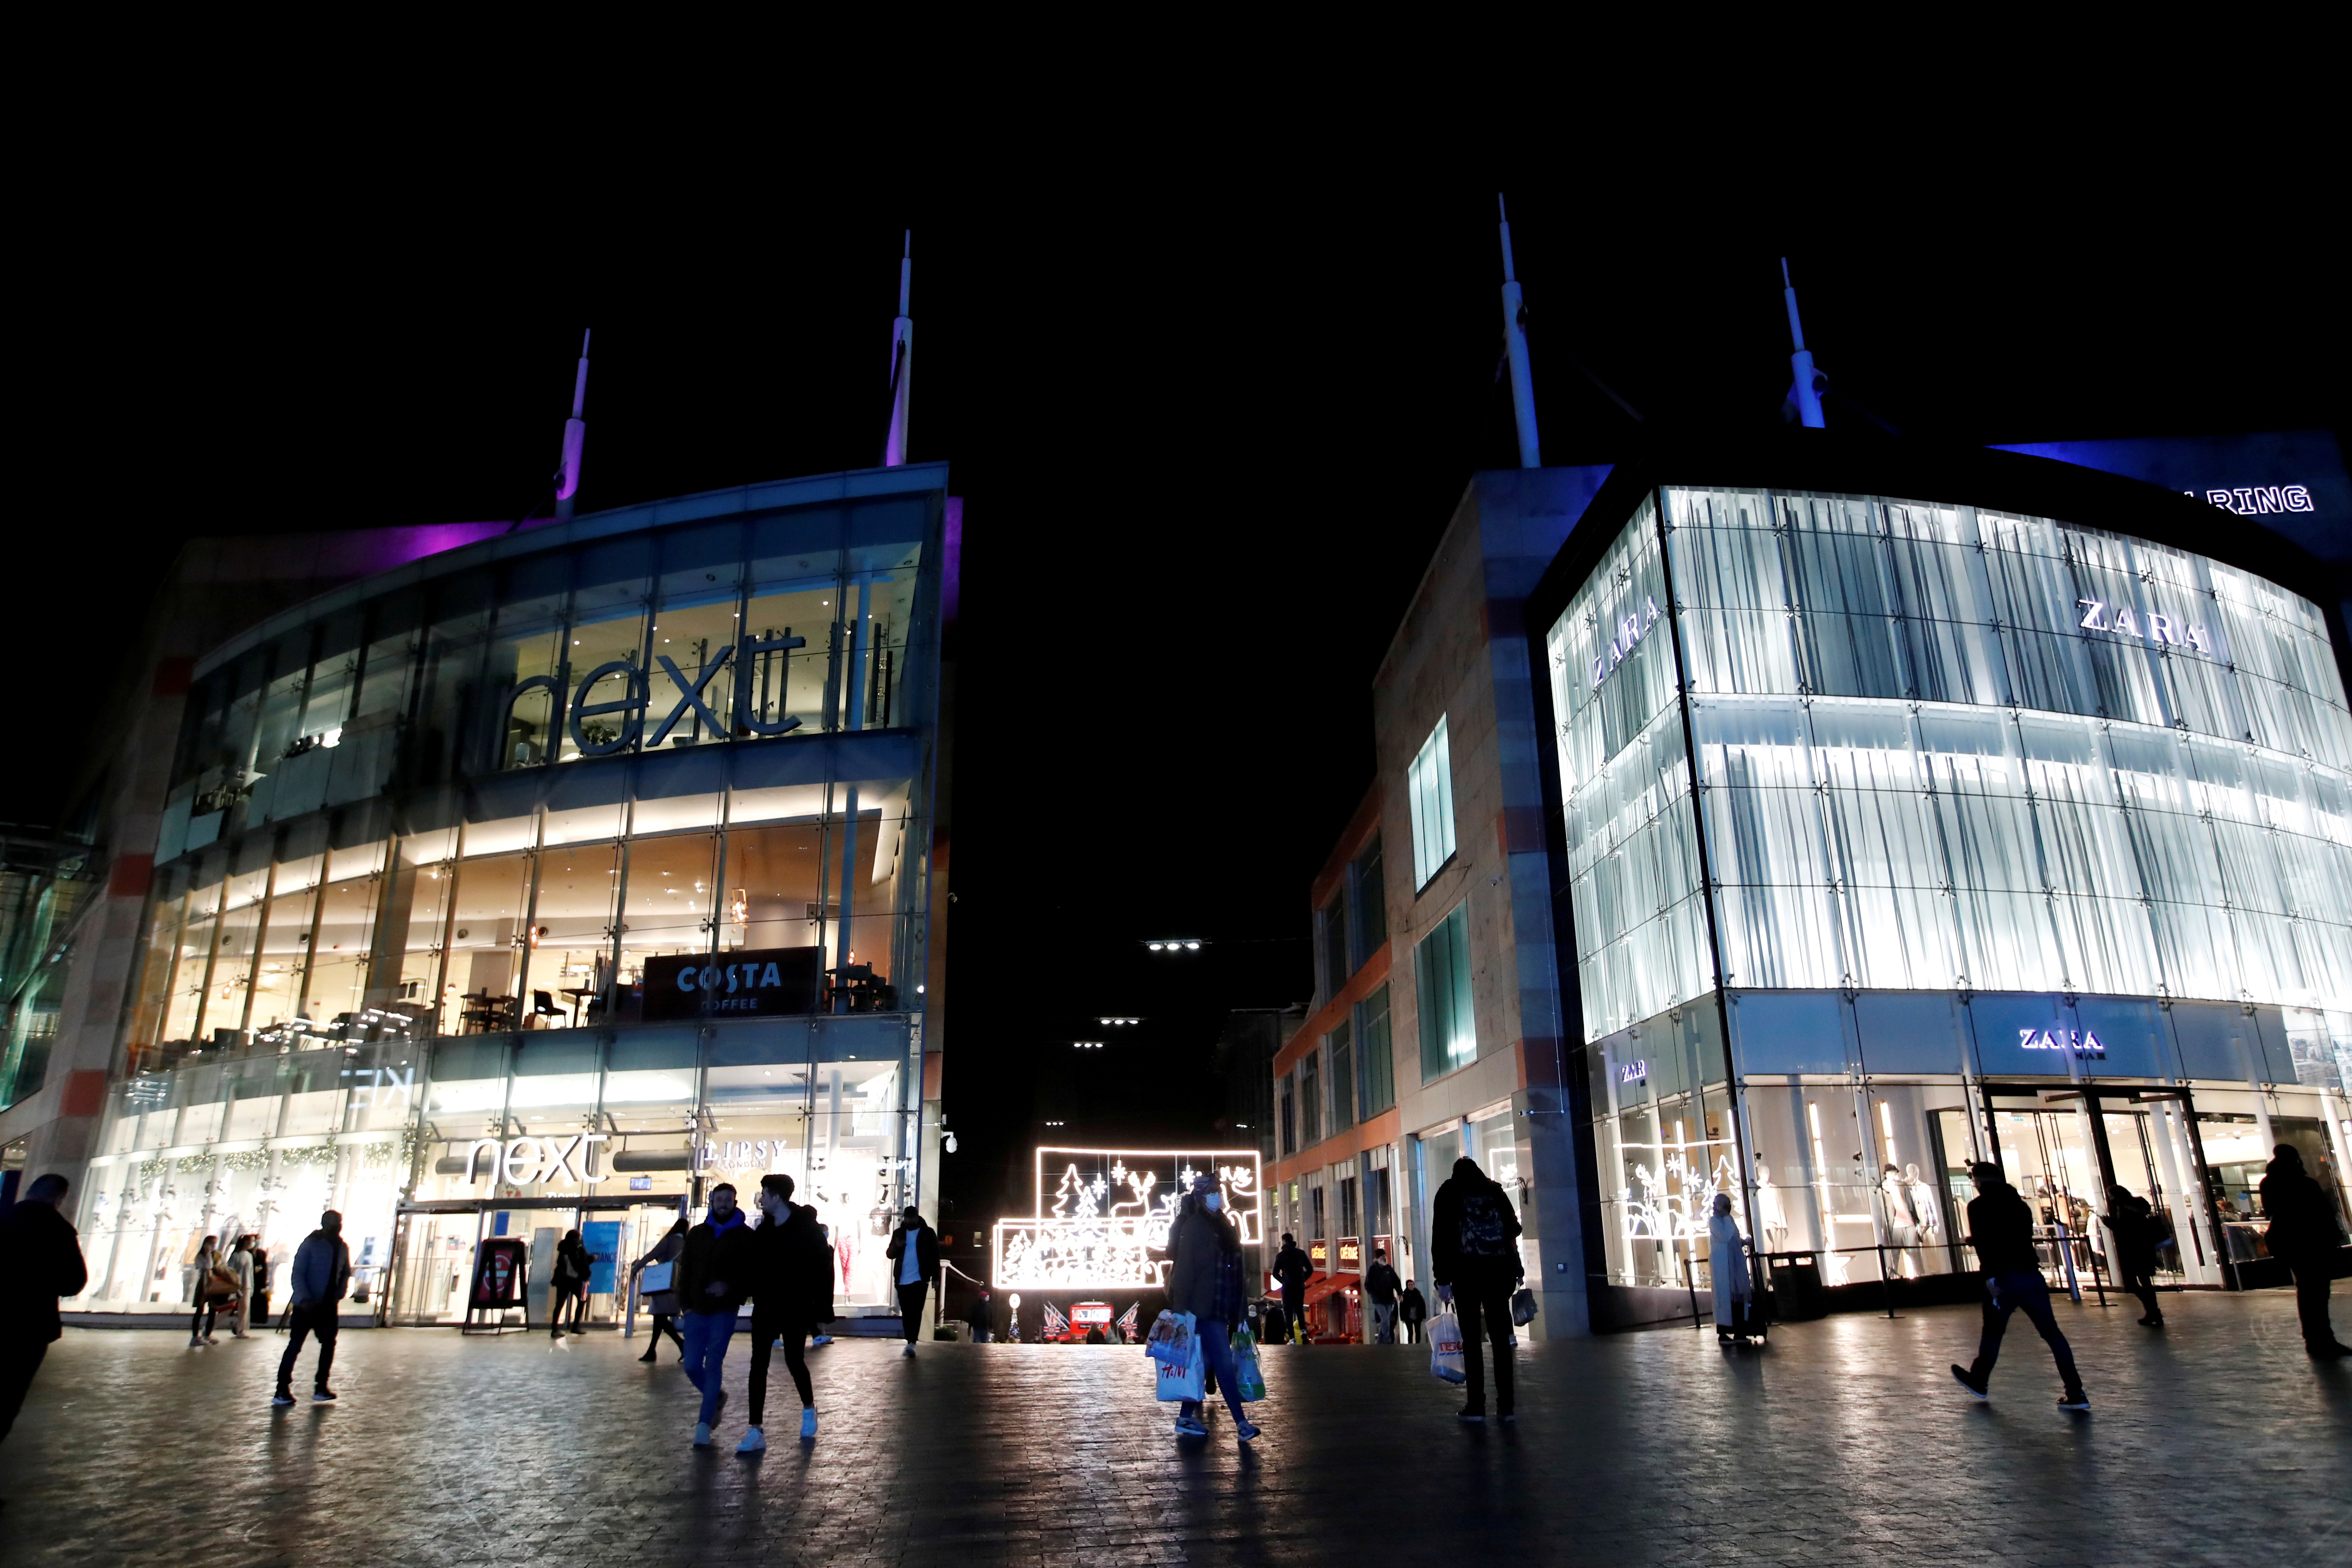 Shoppers are seen walking near Bullring shopping centre, owned by mall operator Hammerson, in Birmingham, Britain, November 4, 2020. REUTERS/Andrew Boyers